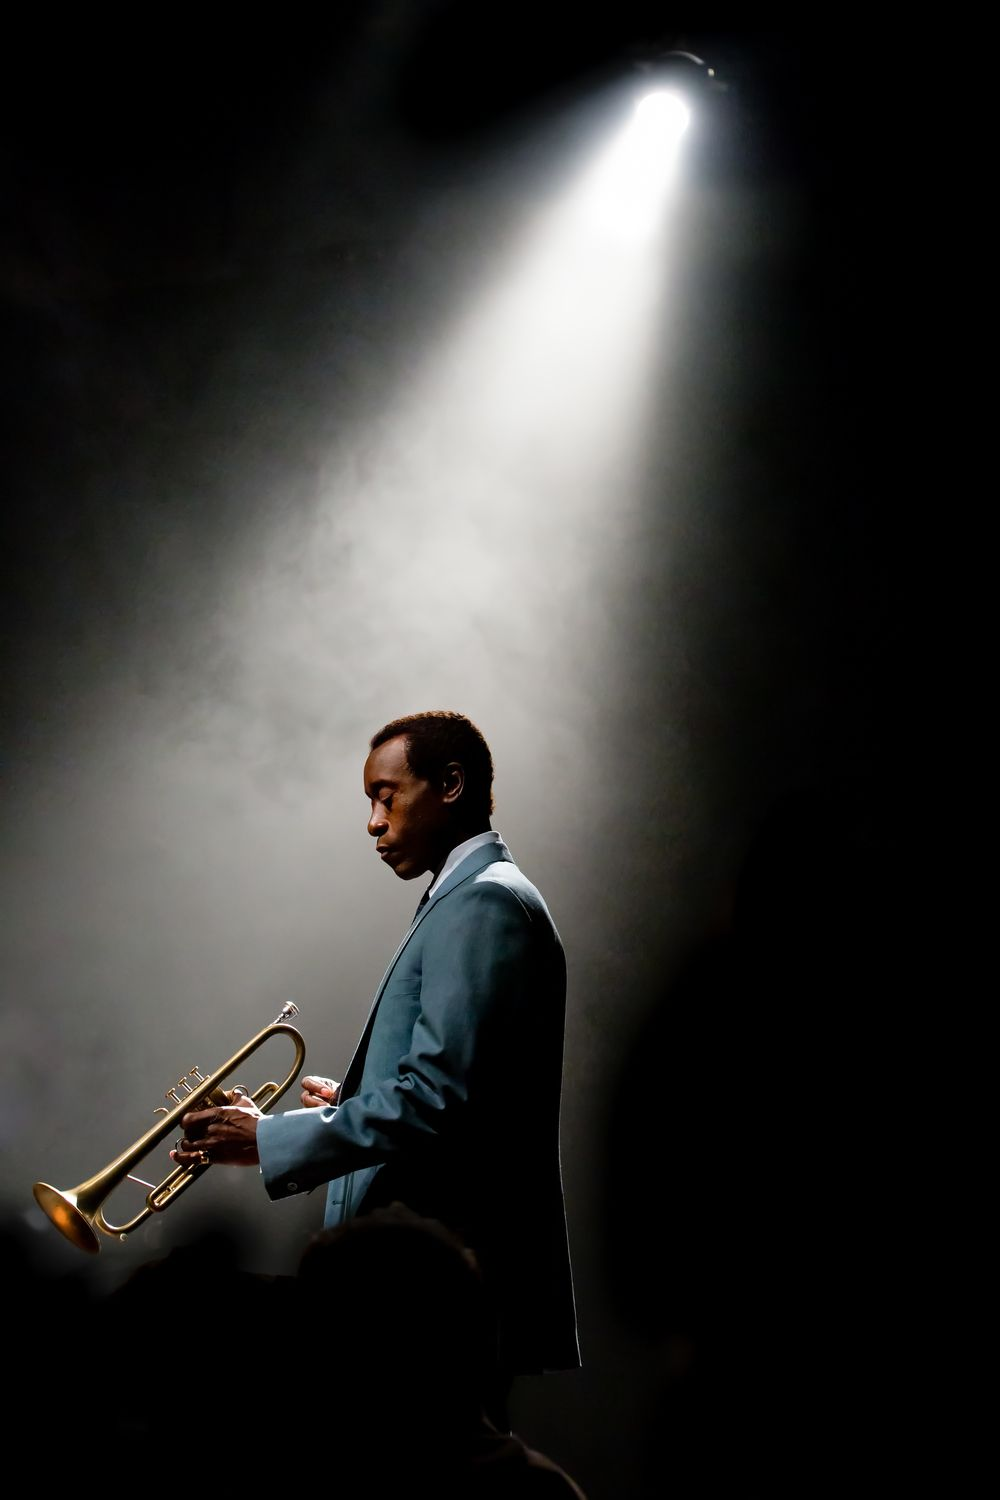 Don Cheadle as Miles Davis in 'Miles Ahead' (2015). Source: http://www.sinuousmag.com/2015/07/don-cheadle-miles-ahead-nyff/